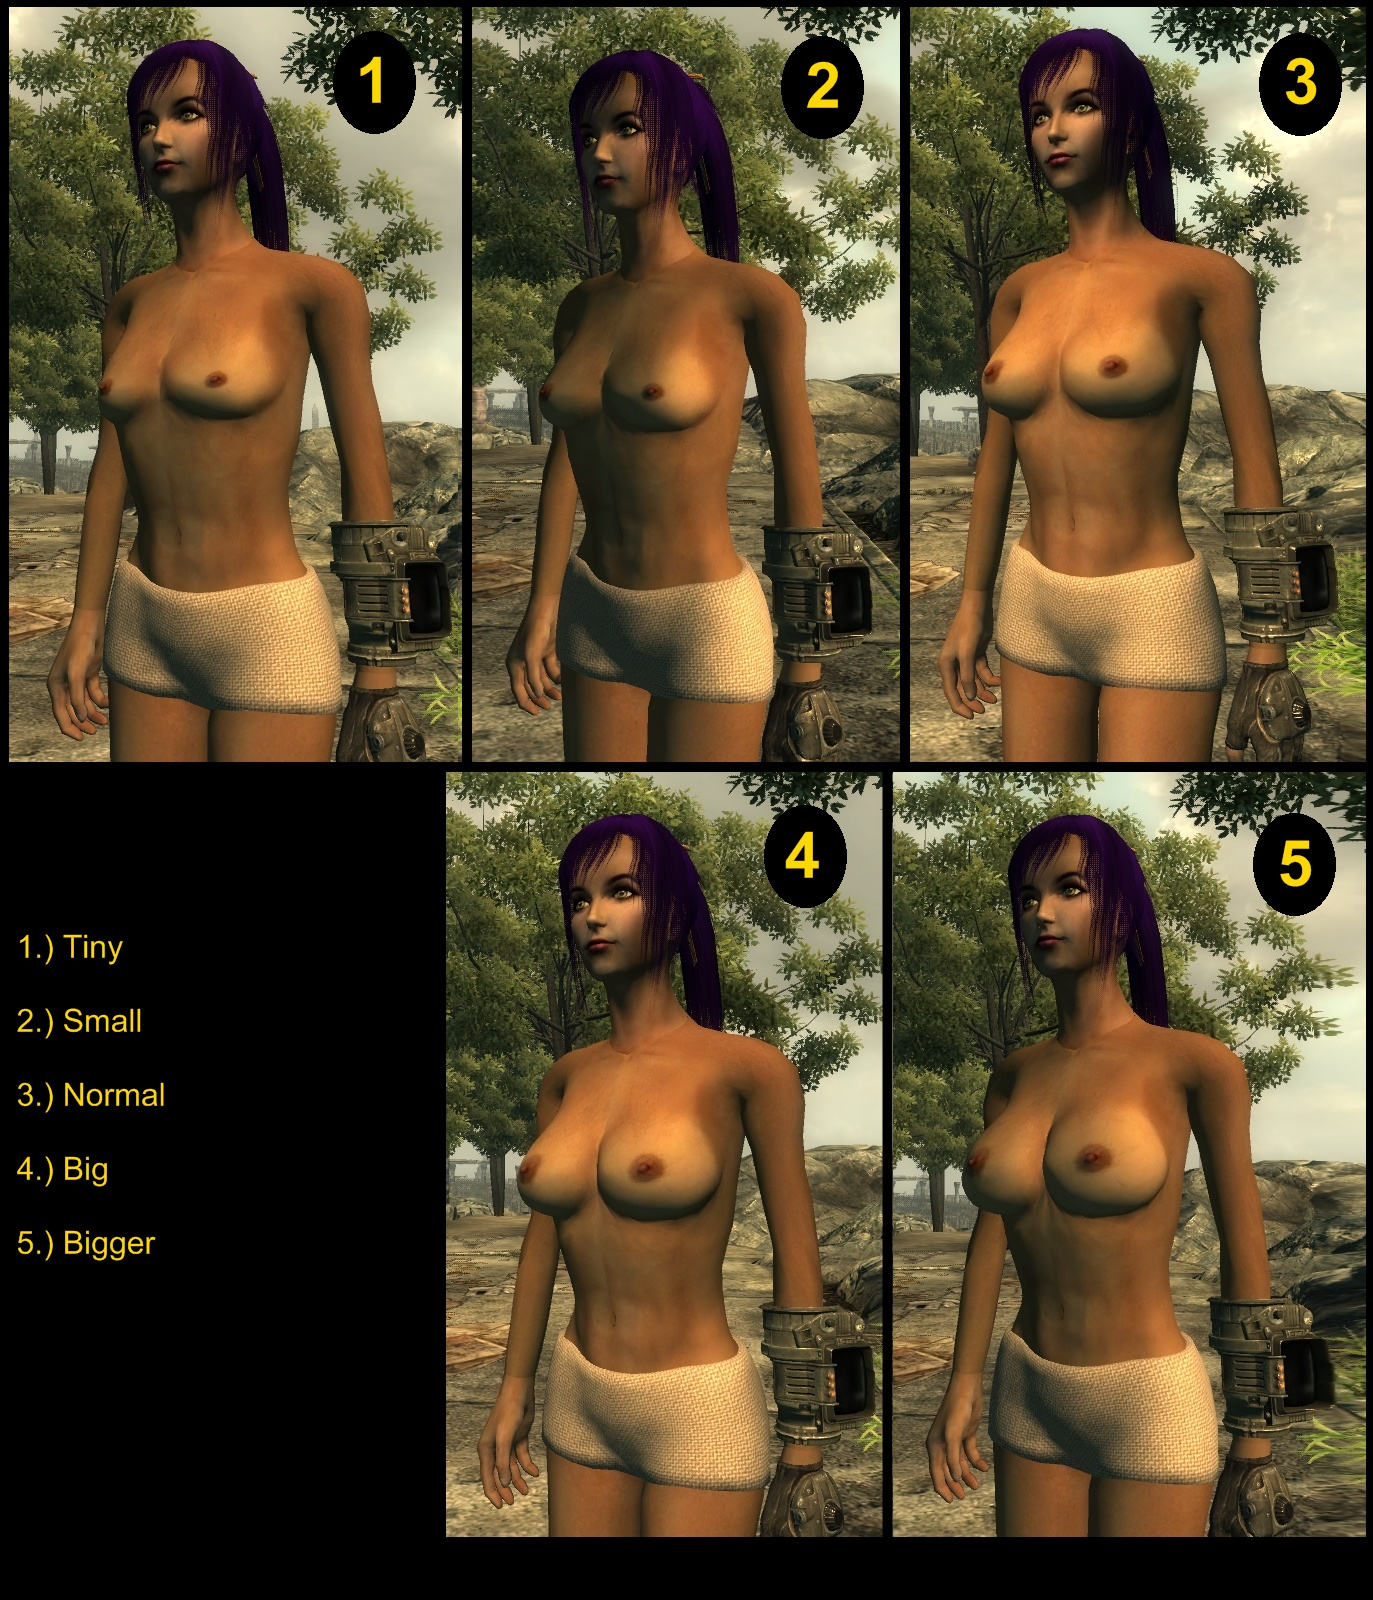 Fallout nude body replacer erotica video